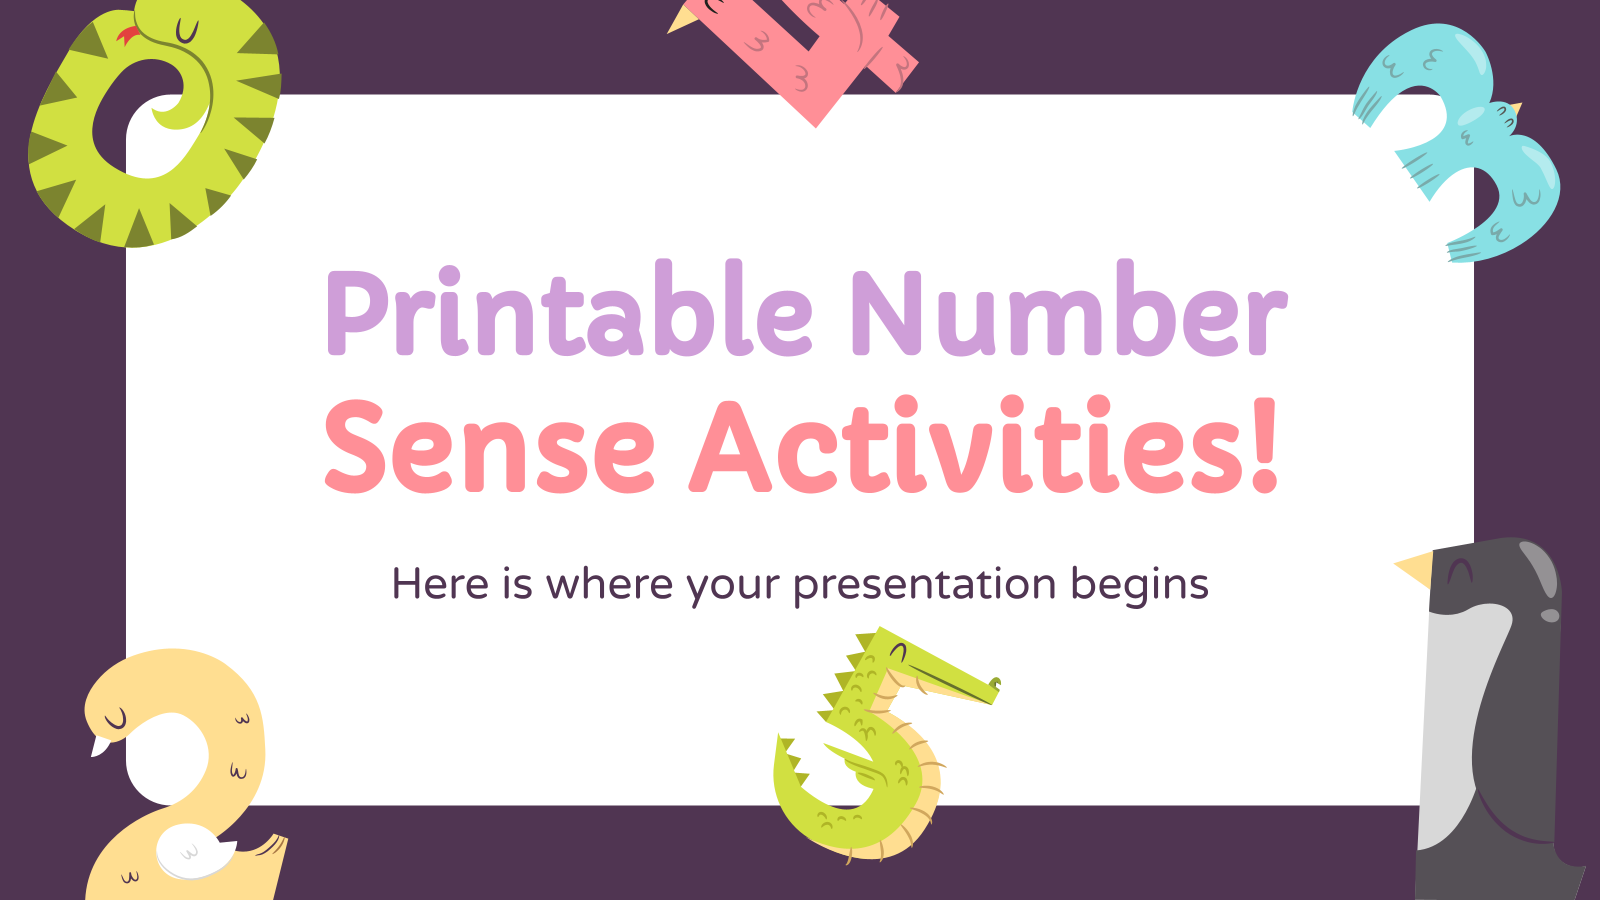 Printable Number Sense Activities! presentation template